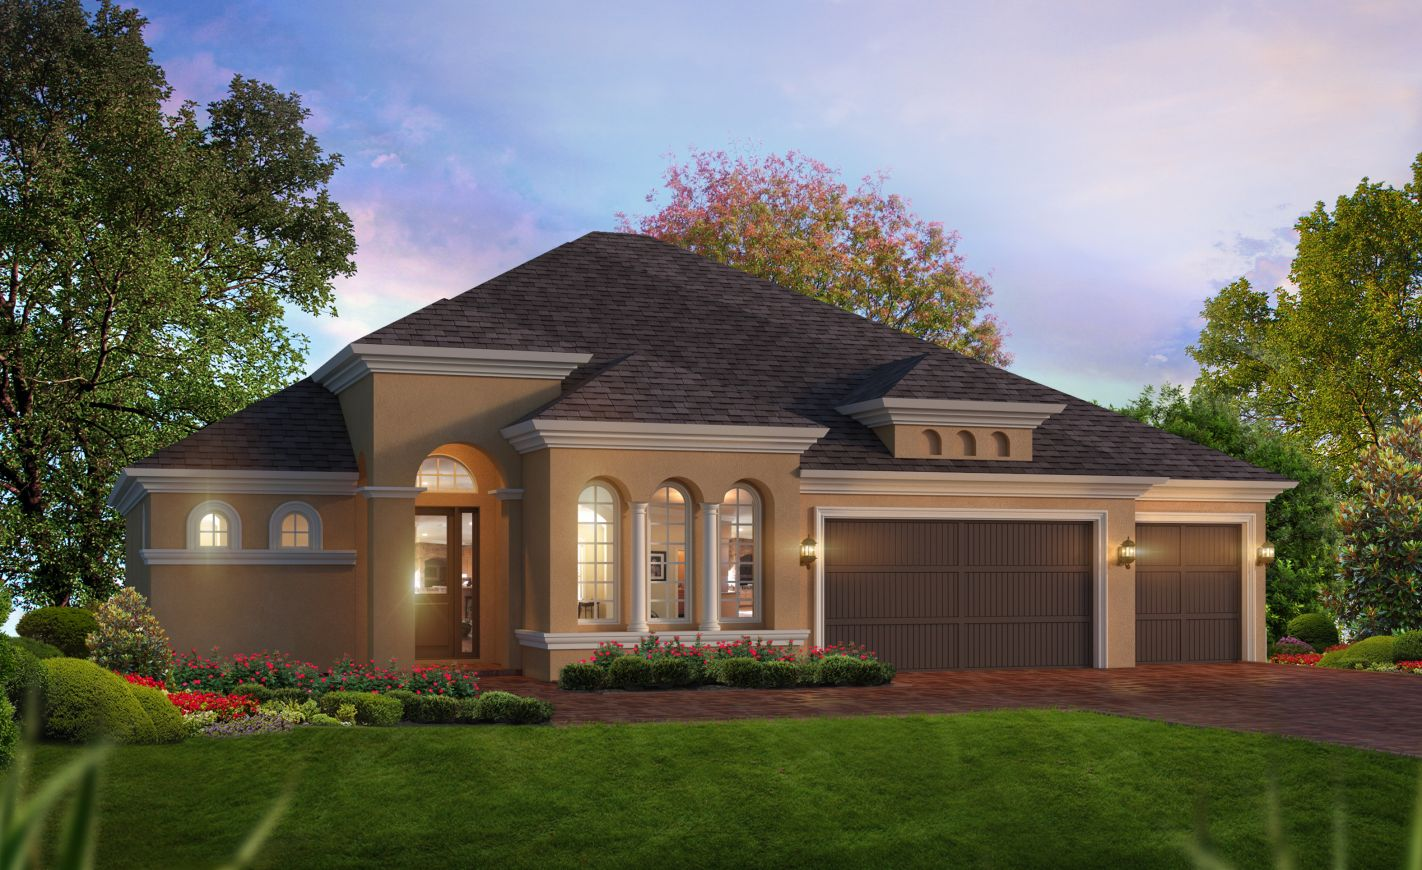 Jacksonville Homes for Sale - The Pamela at Tamaya